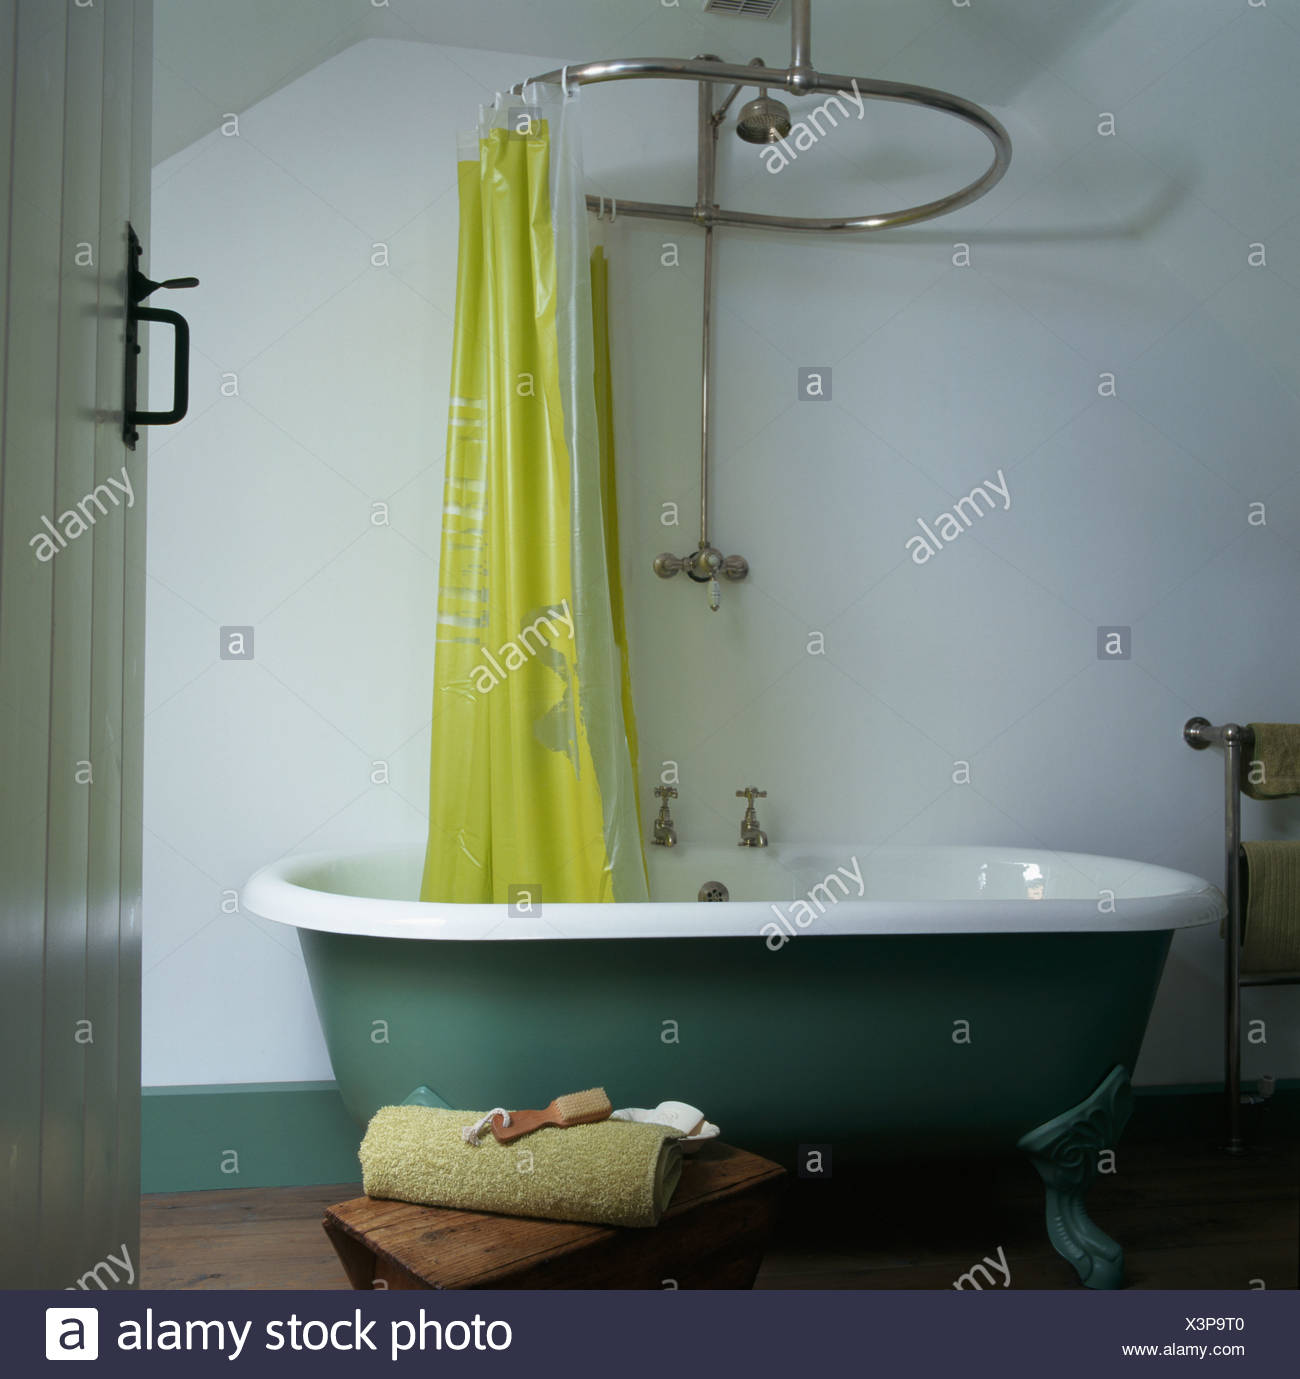 Yellow plastic curtain on chrome shower rail above green roll top ...